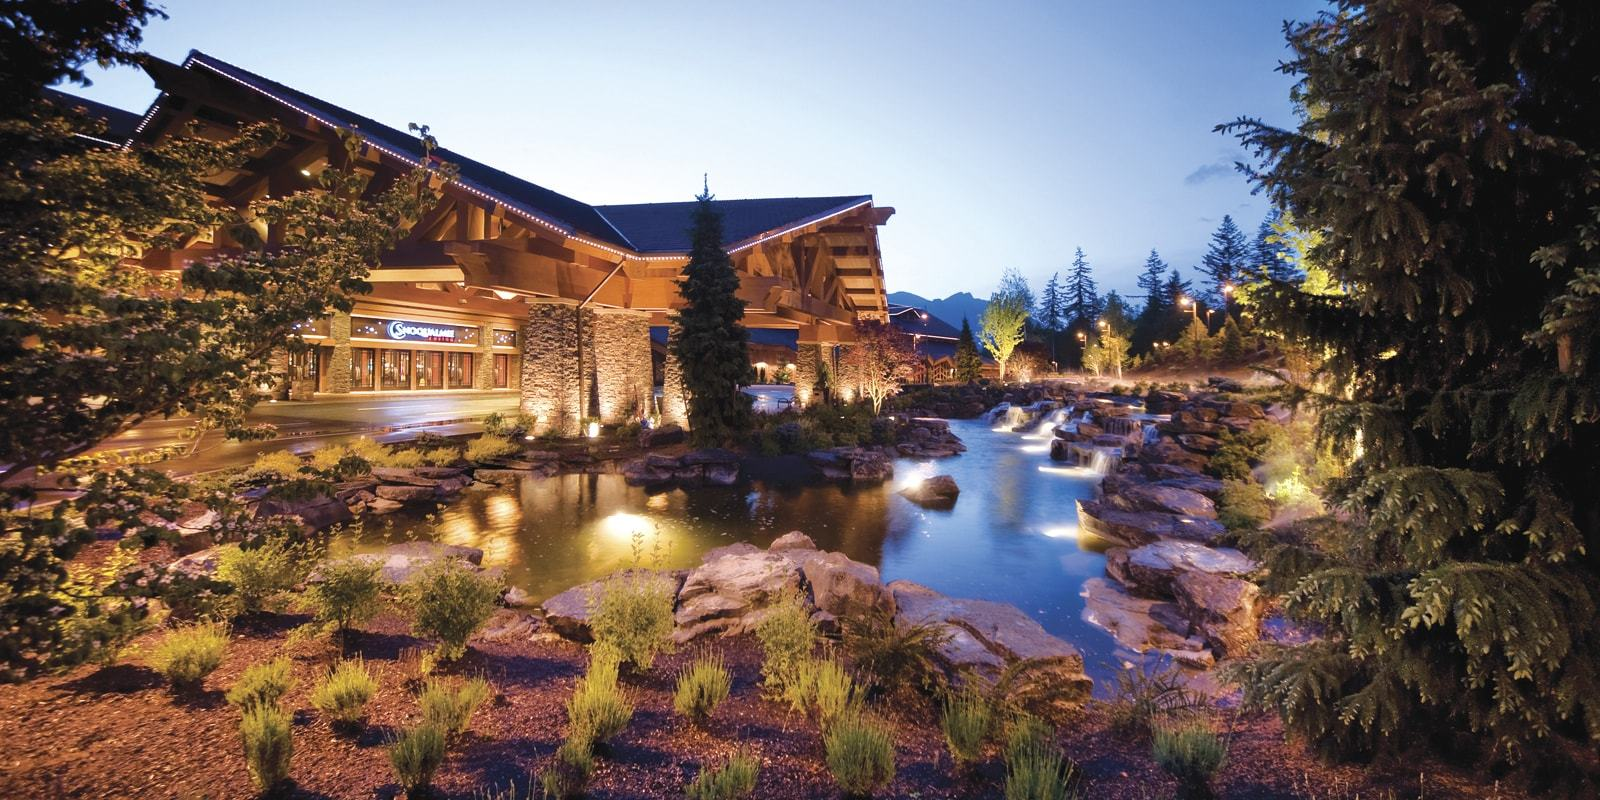 Snoqualmie Casino turns to Scientific Games for management systems